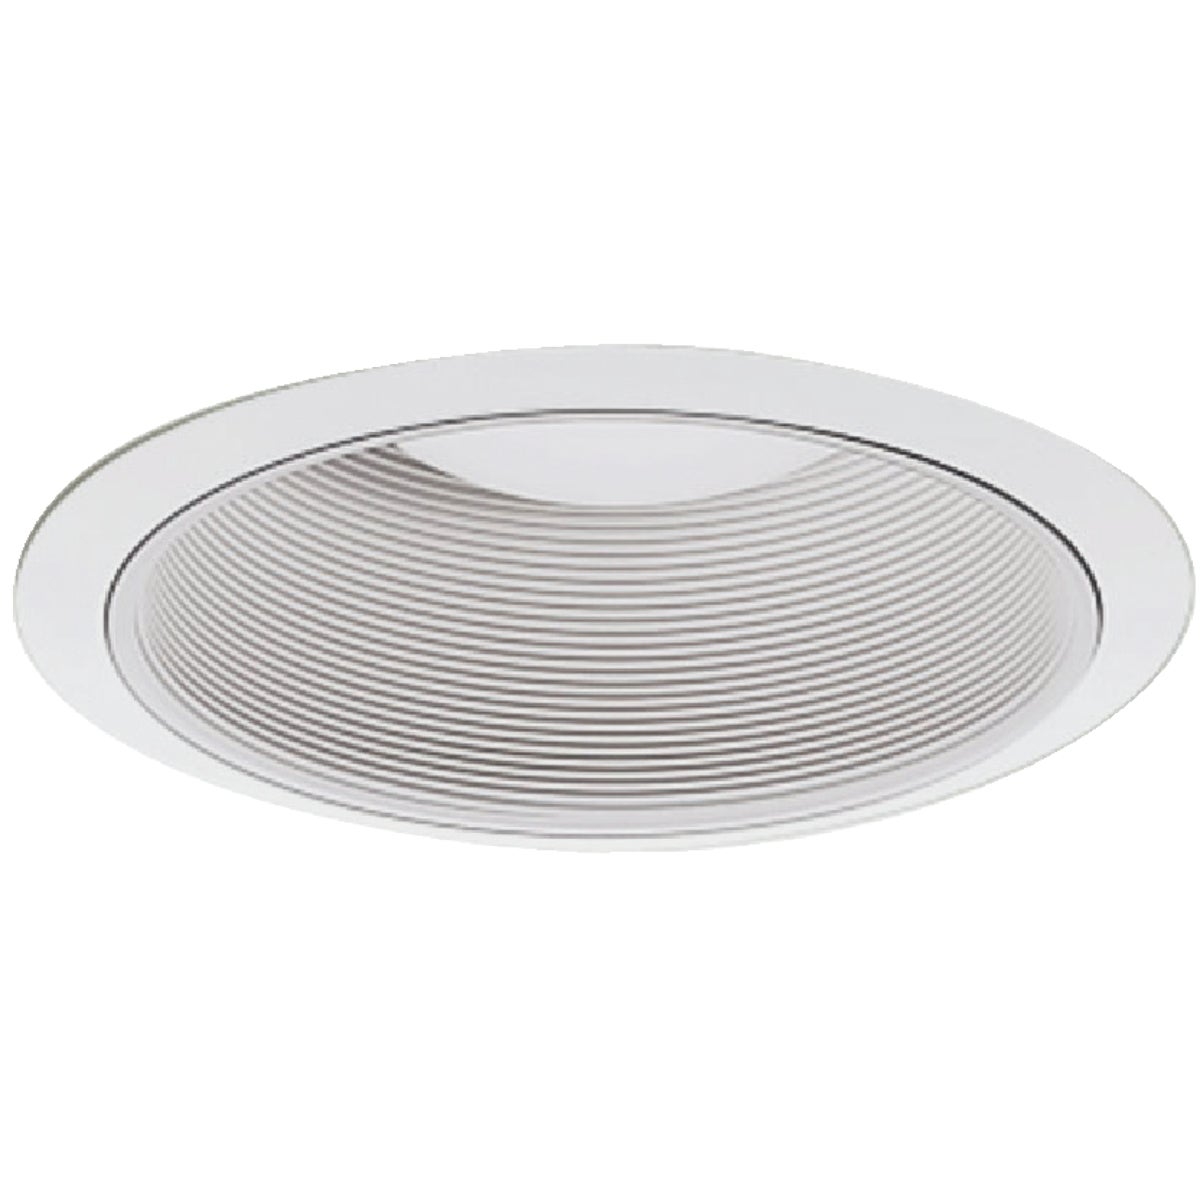 WHT/WHT RECESS FIXT TRIM - 310W by Cooper Lighting